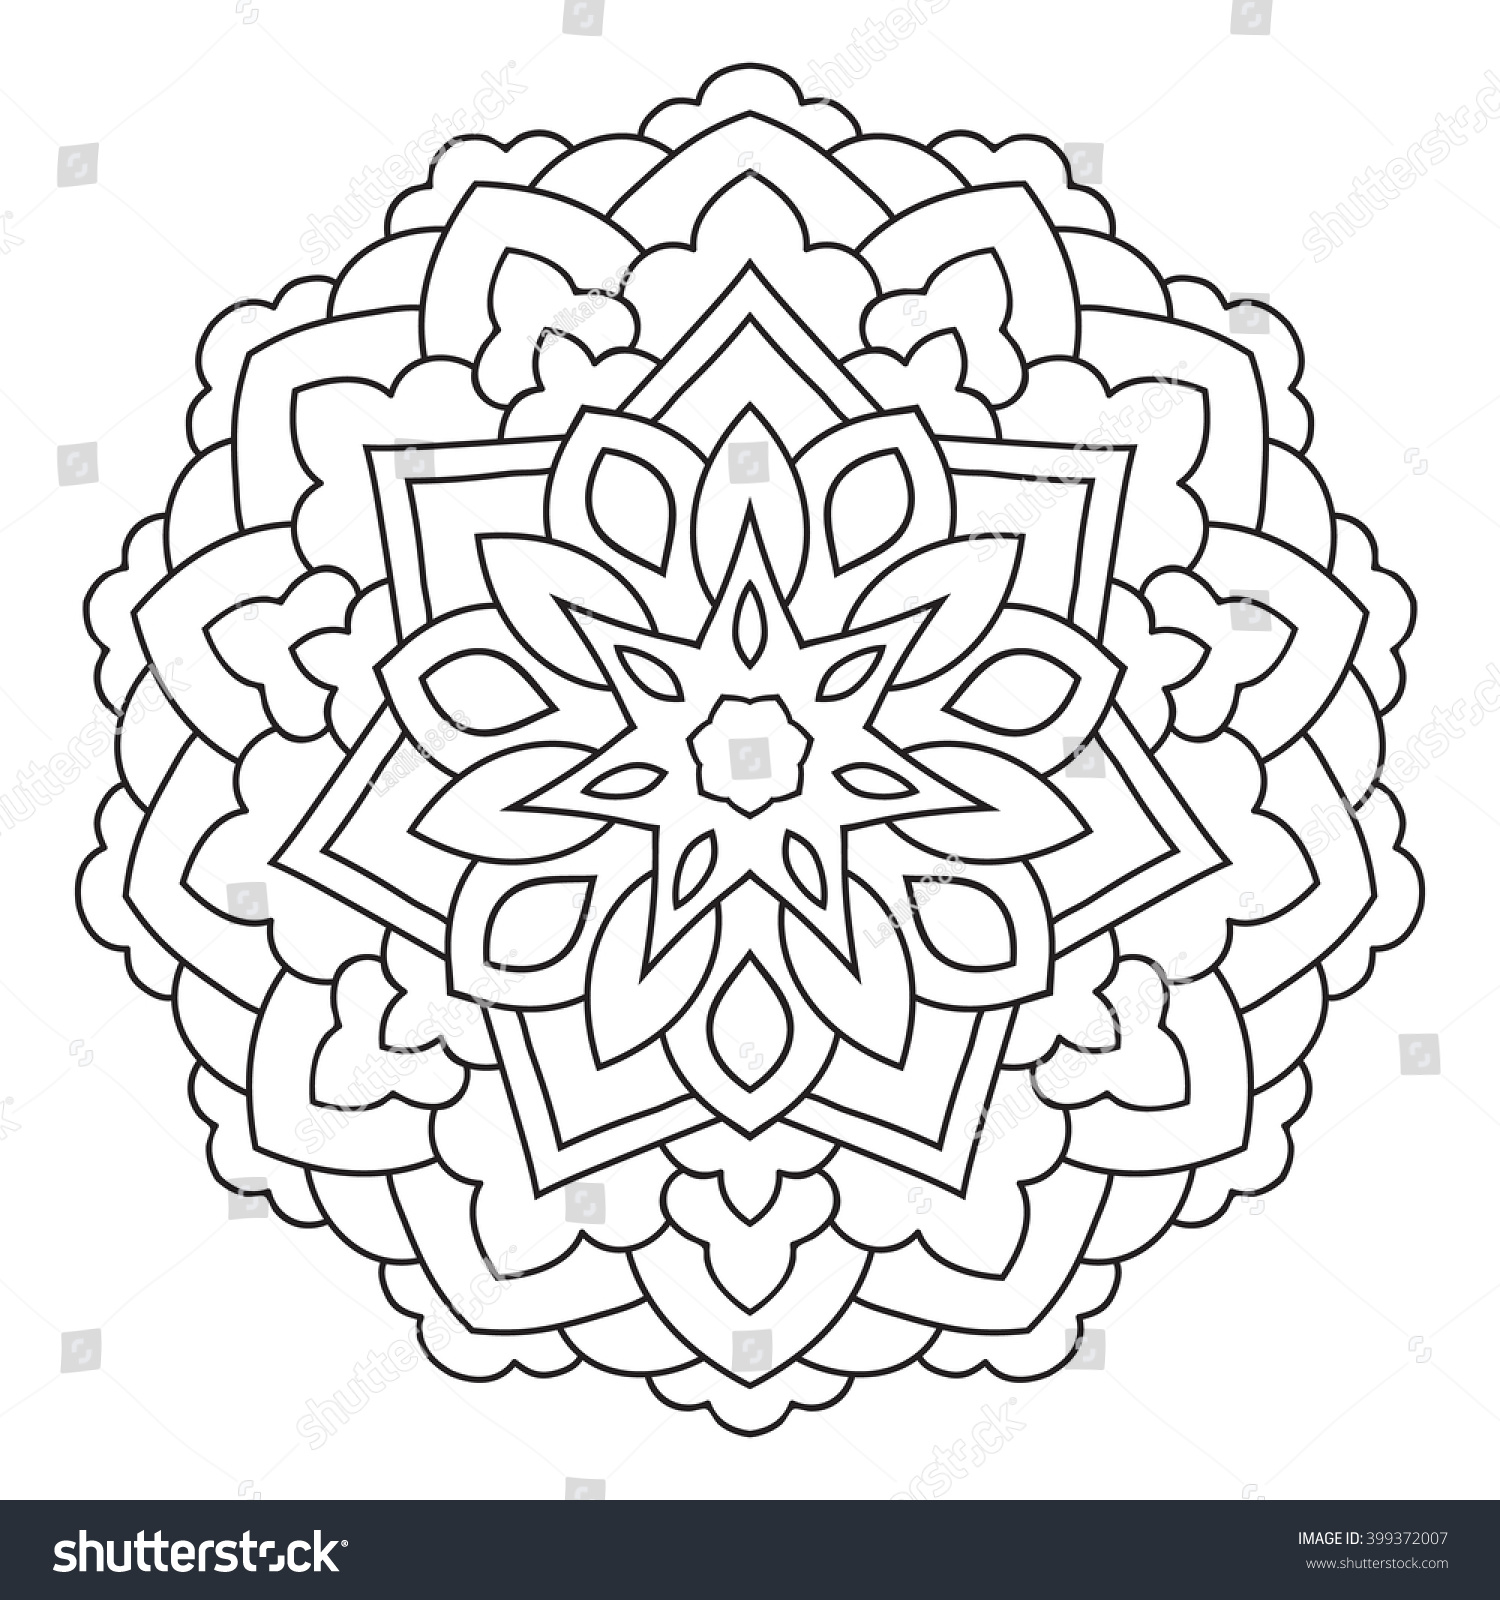 symmetrical circular pattern mandala decorative oriental ornament coloring page for adults